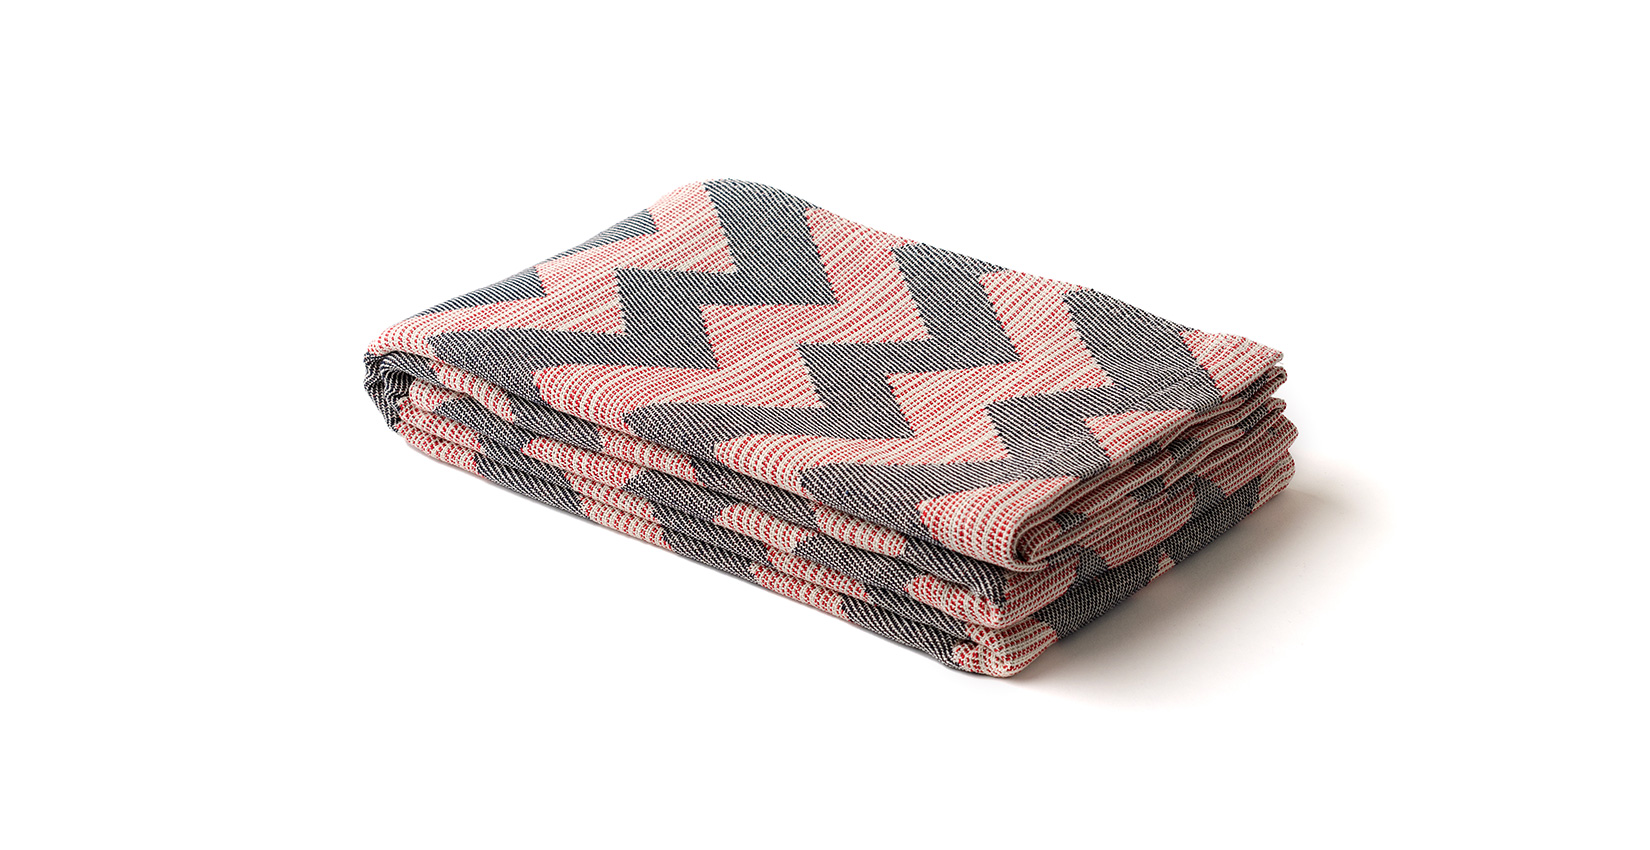 Bedspreads, colchas - ZigZag